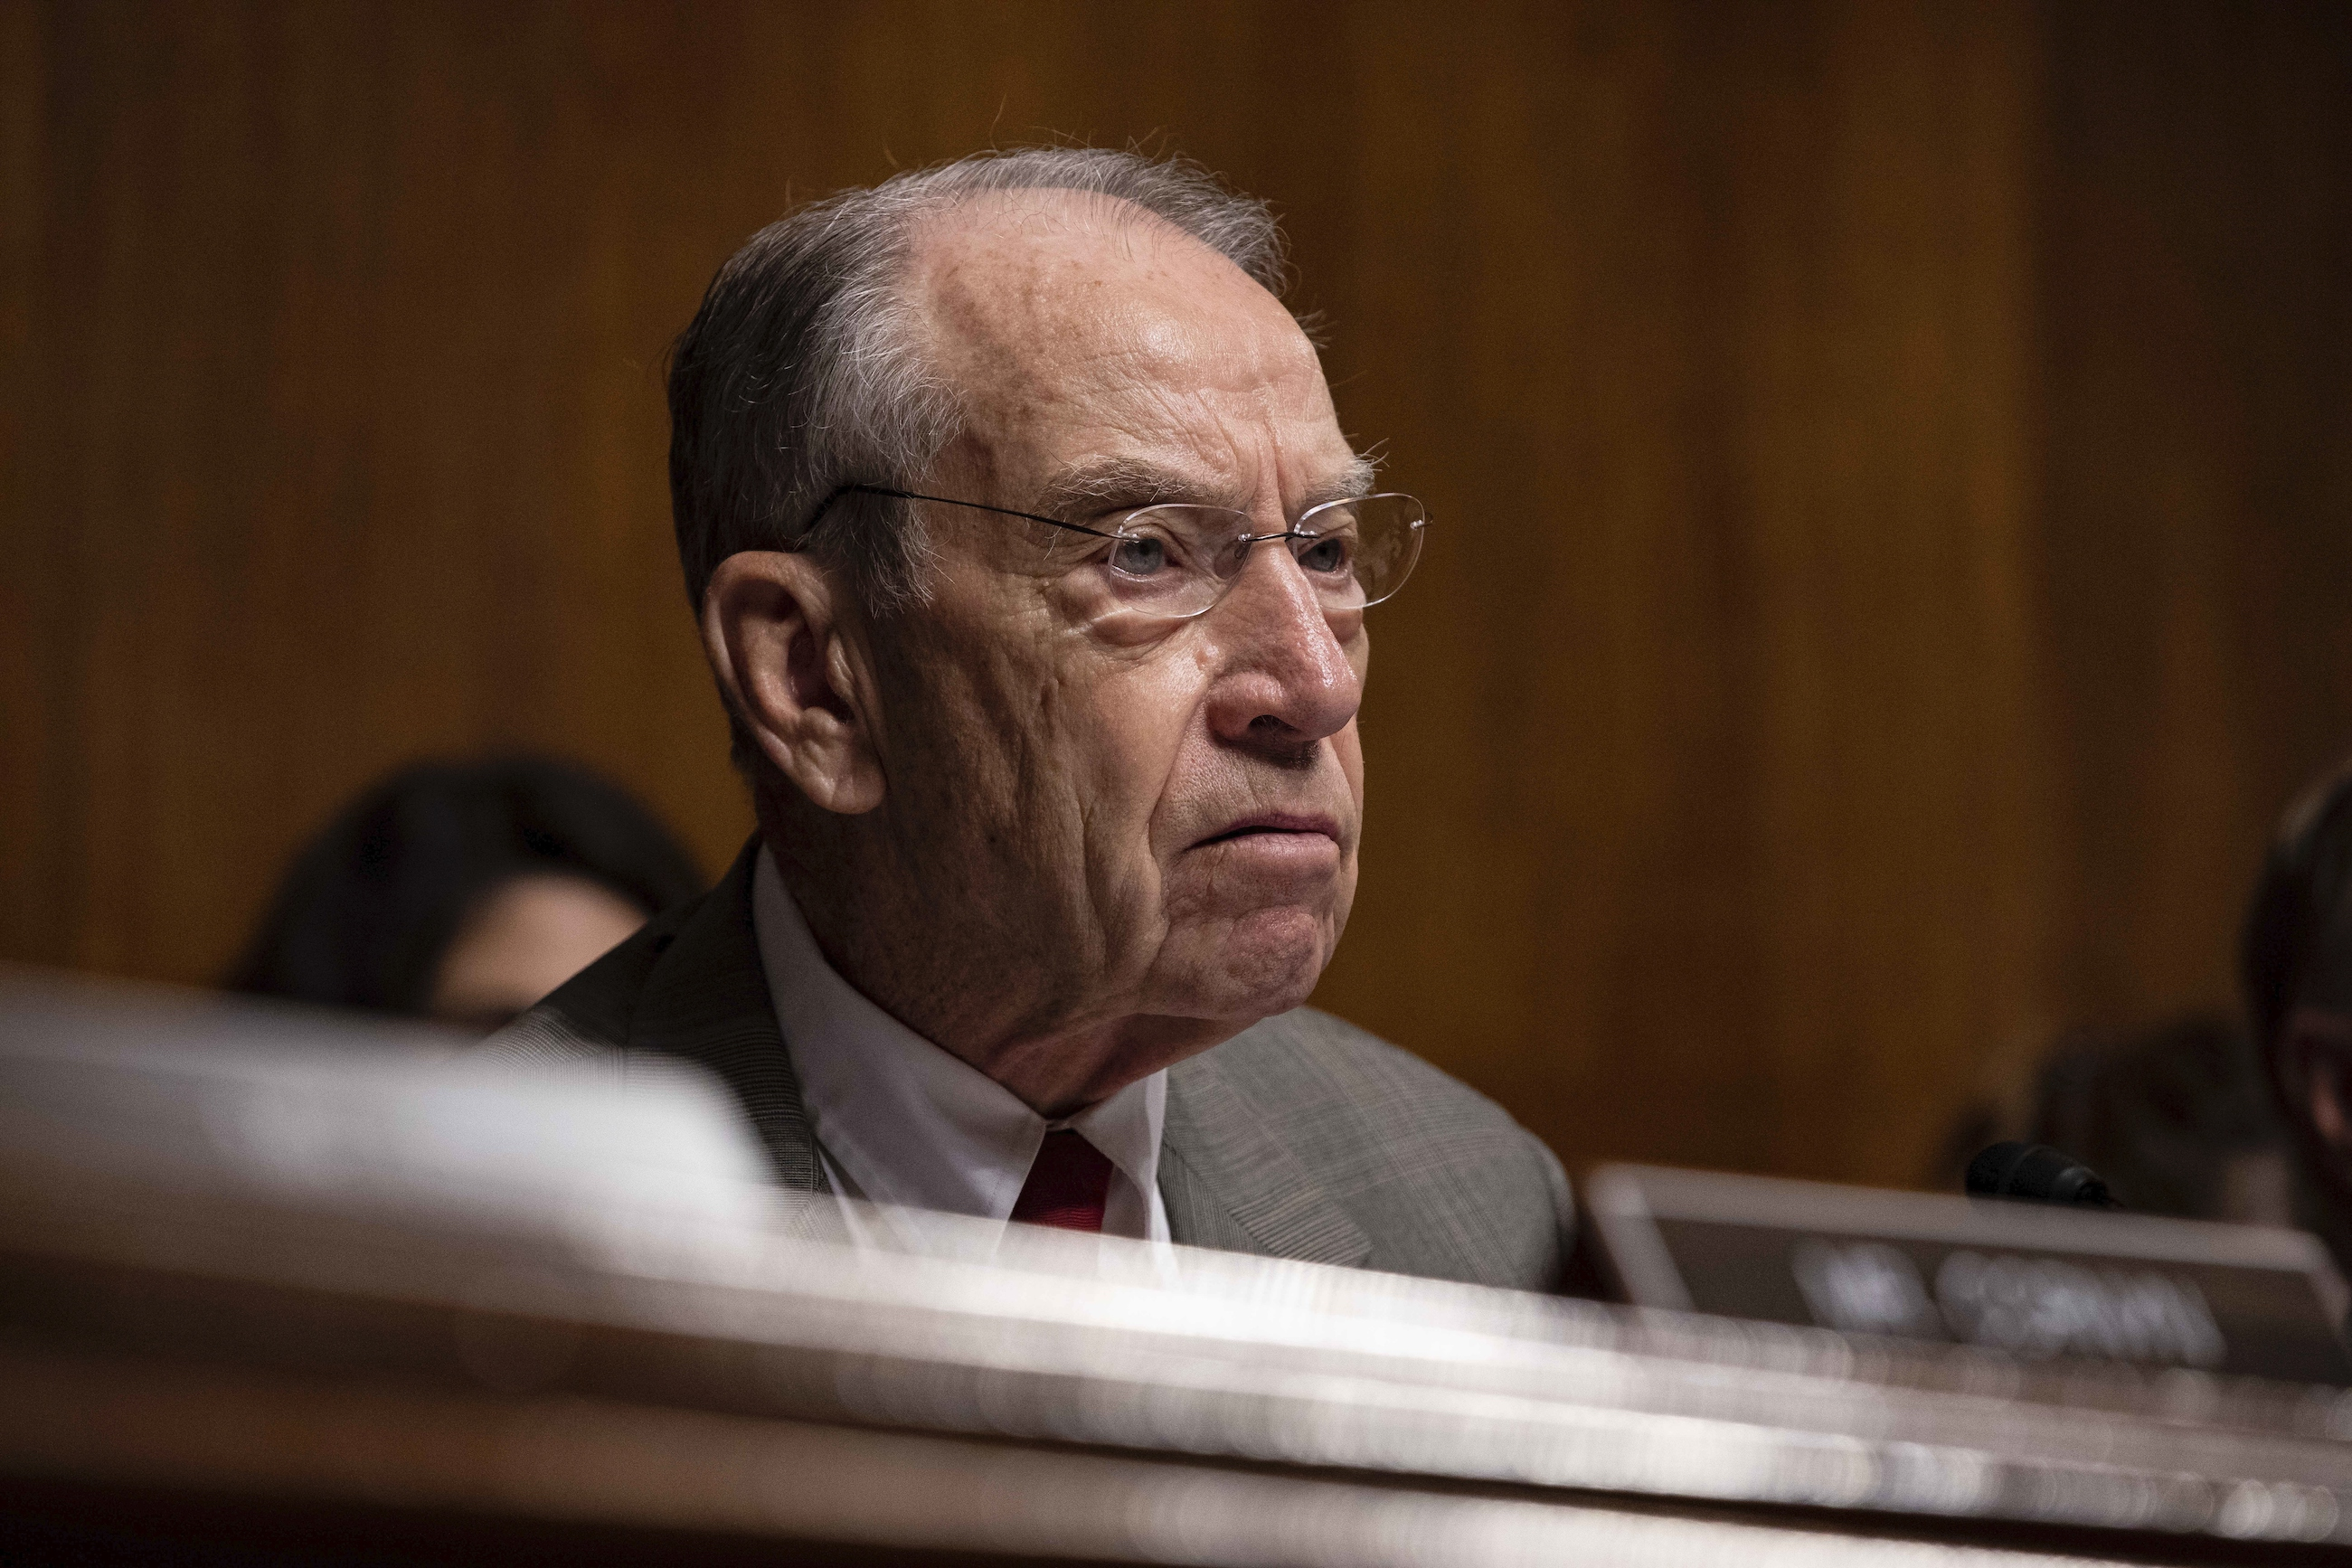 Sen. Grassley Says Whistleblower Deserves to Be 'Heard out and Protected'